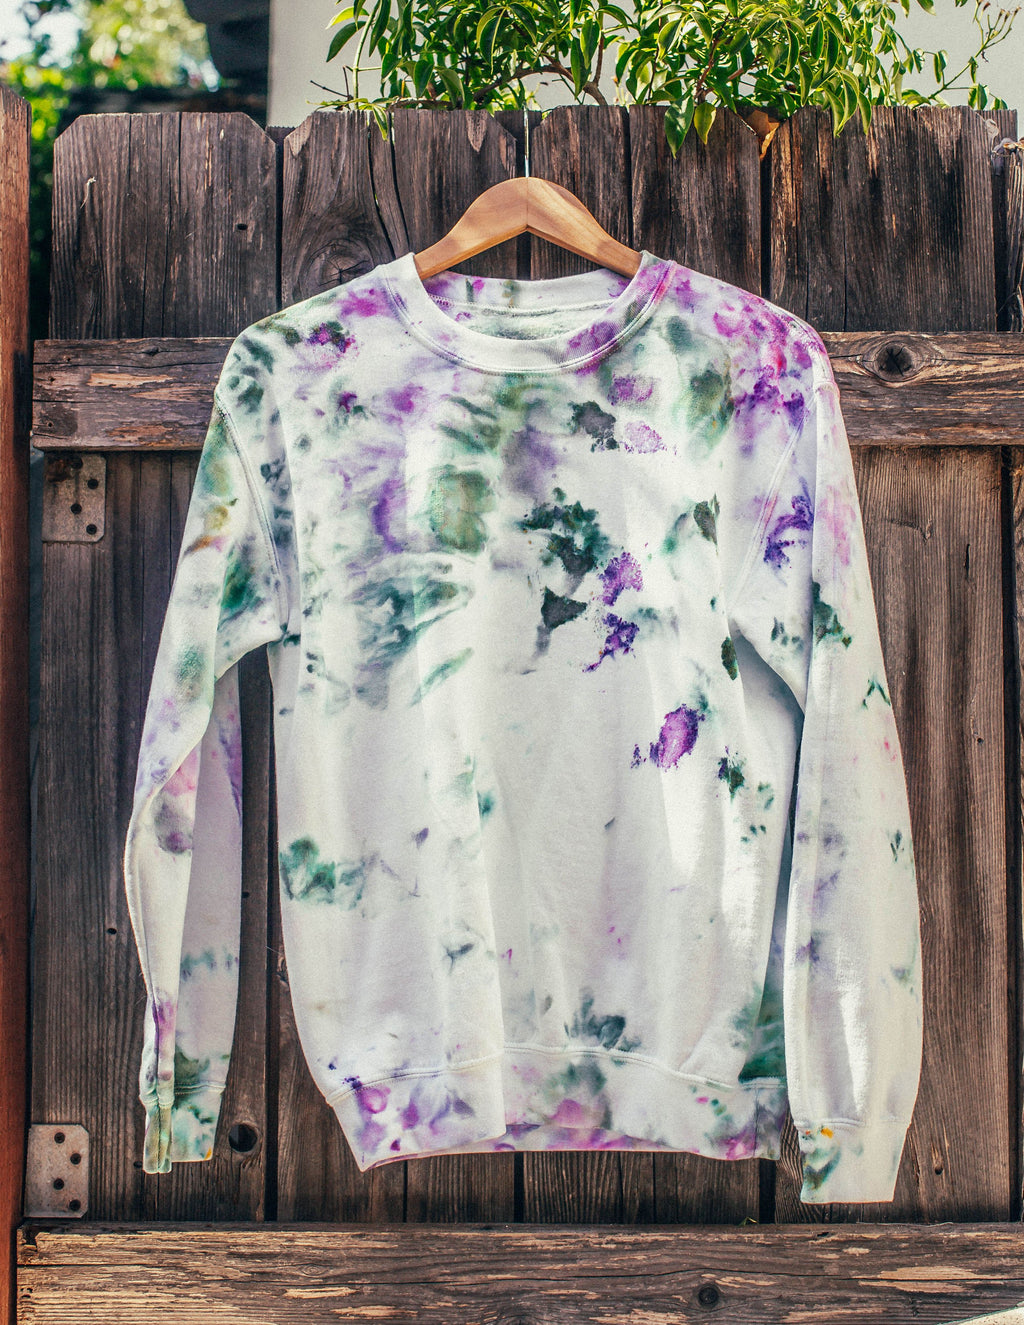 Ice Tie-Dye Sweatshirt - Magill Clothing